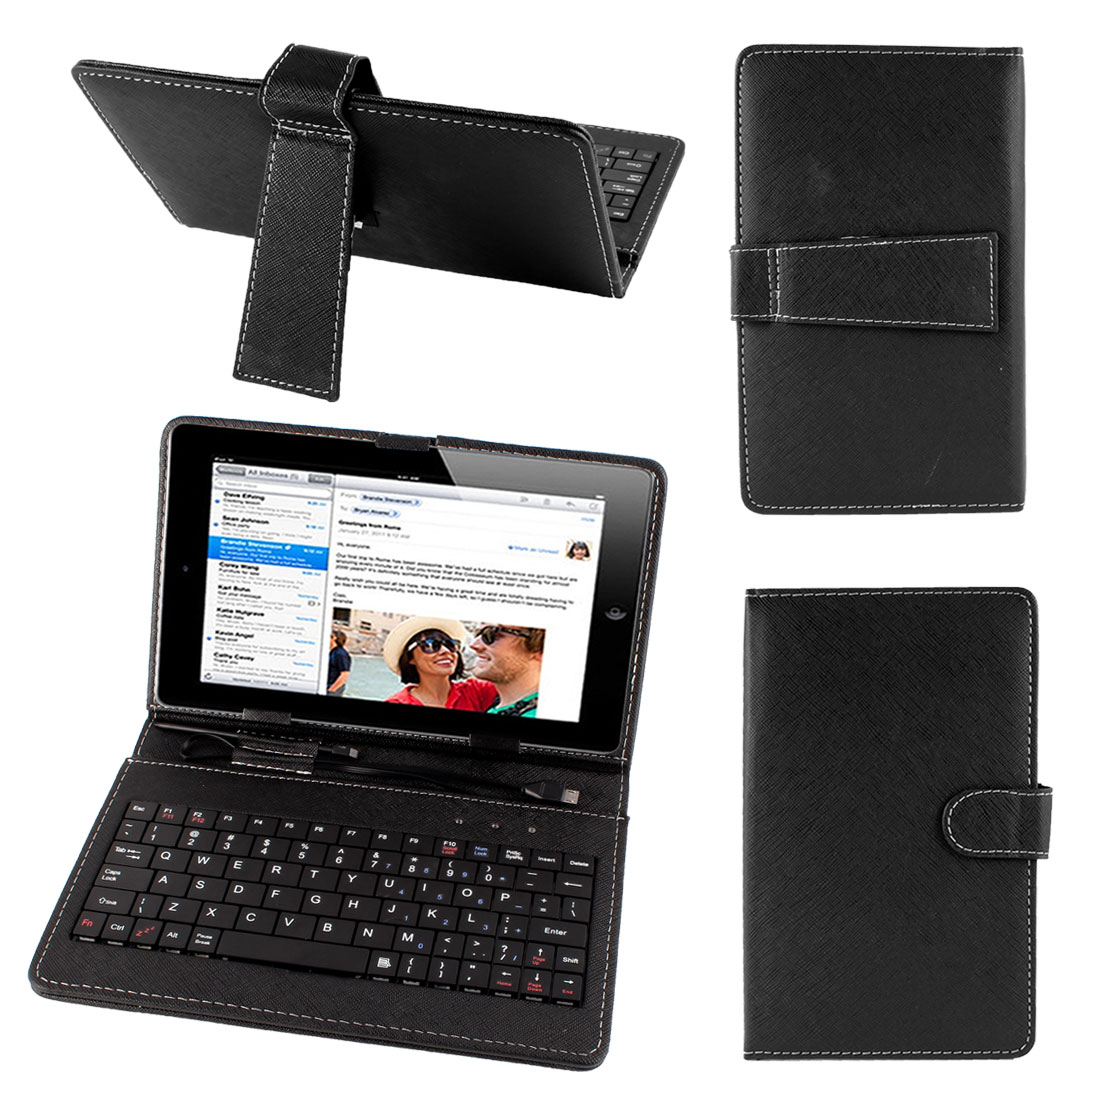 "Black Faux Leather Stand Case Cover Micro 5pin USB Keyboard for 7"" Tablet PC"